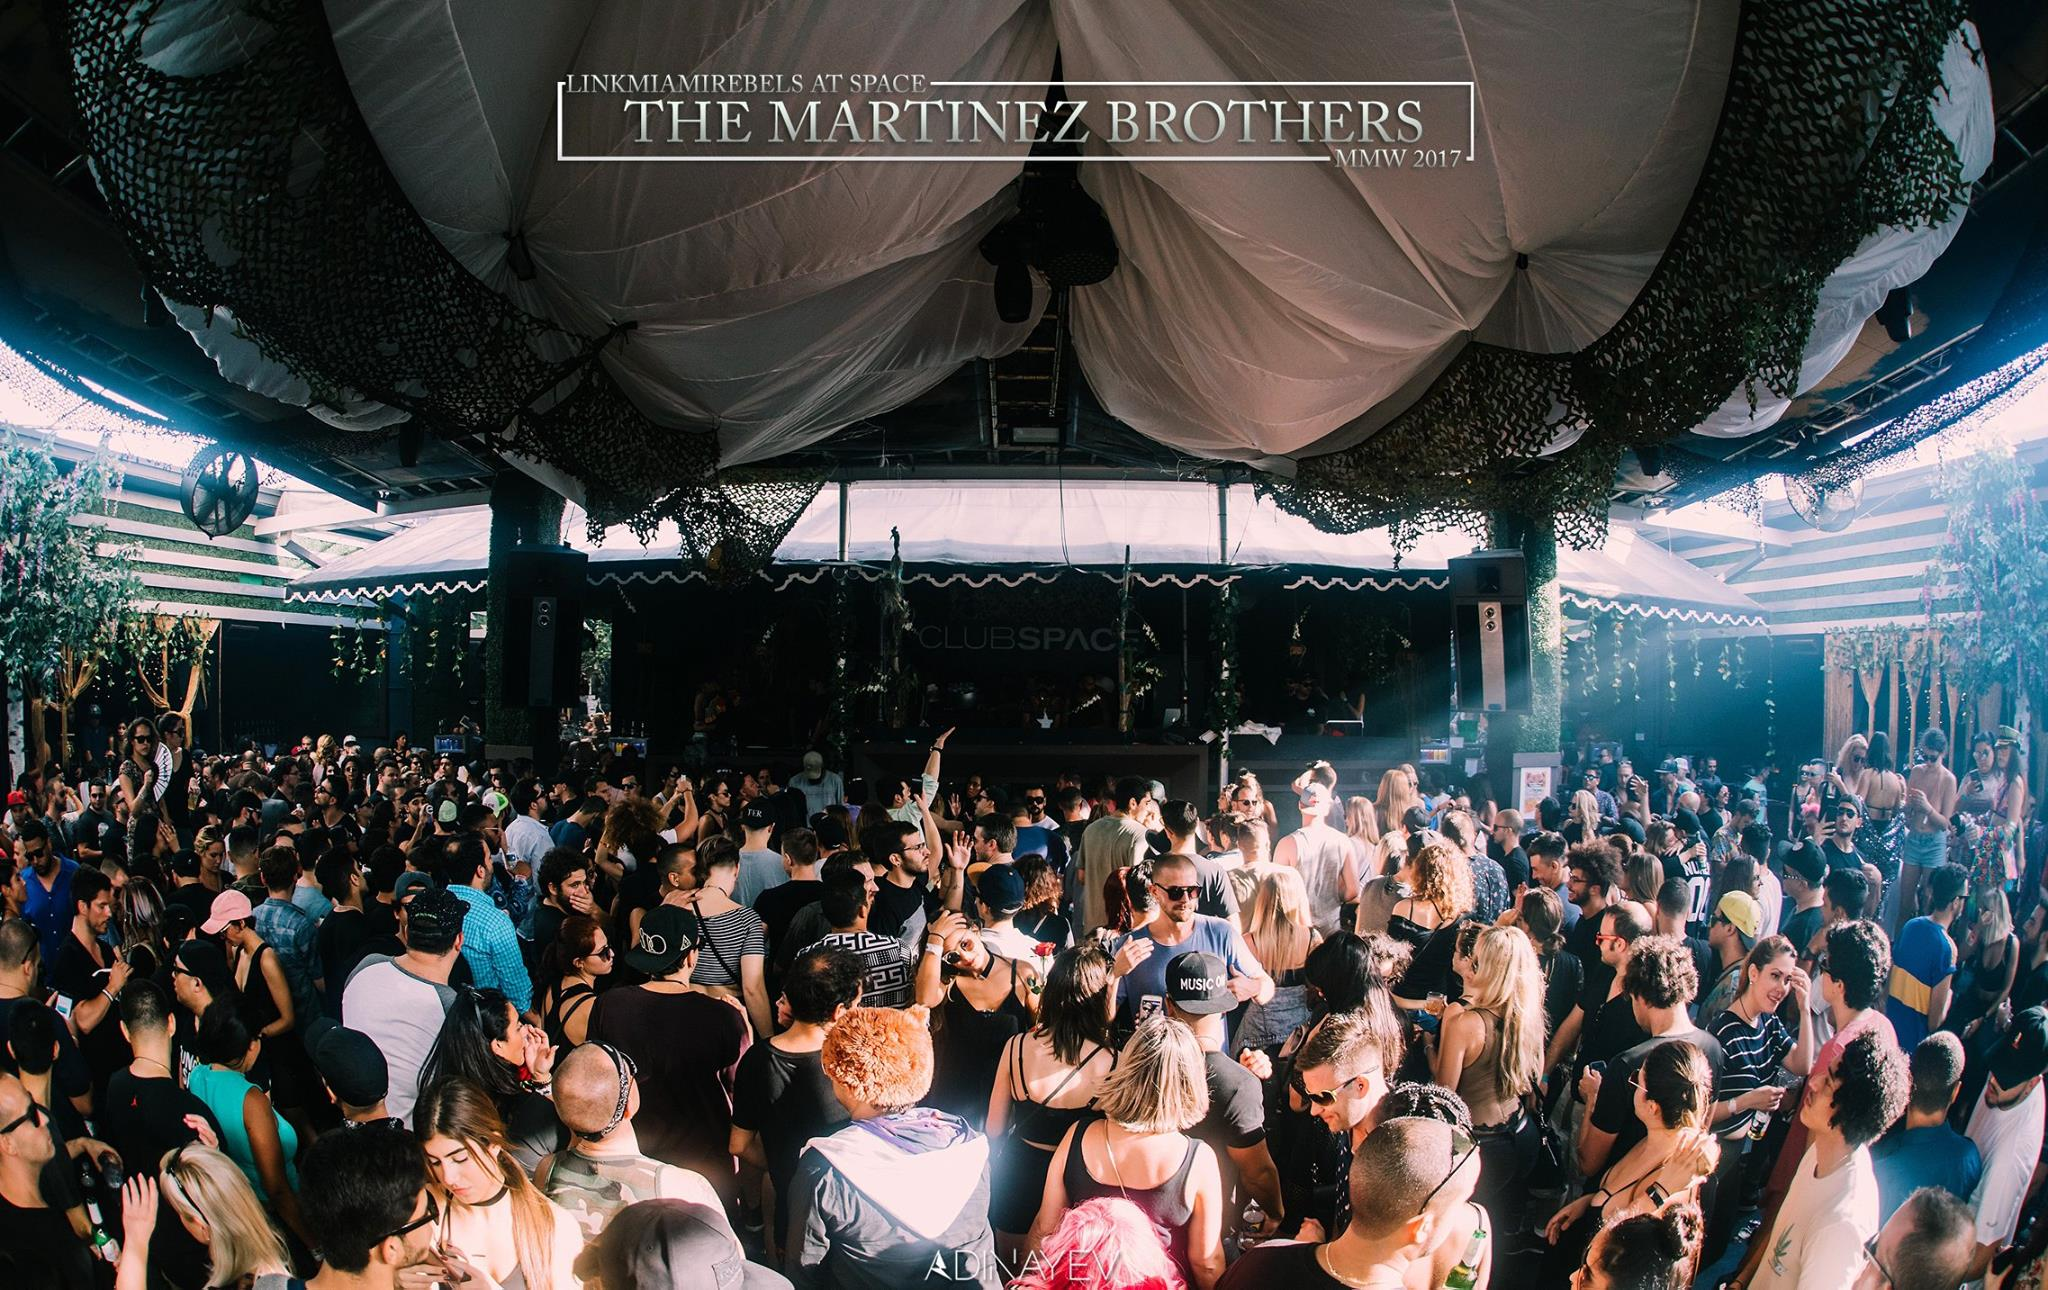 The Martinez Brothers 24 Hour Party / MMW2017 / March 26